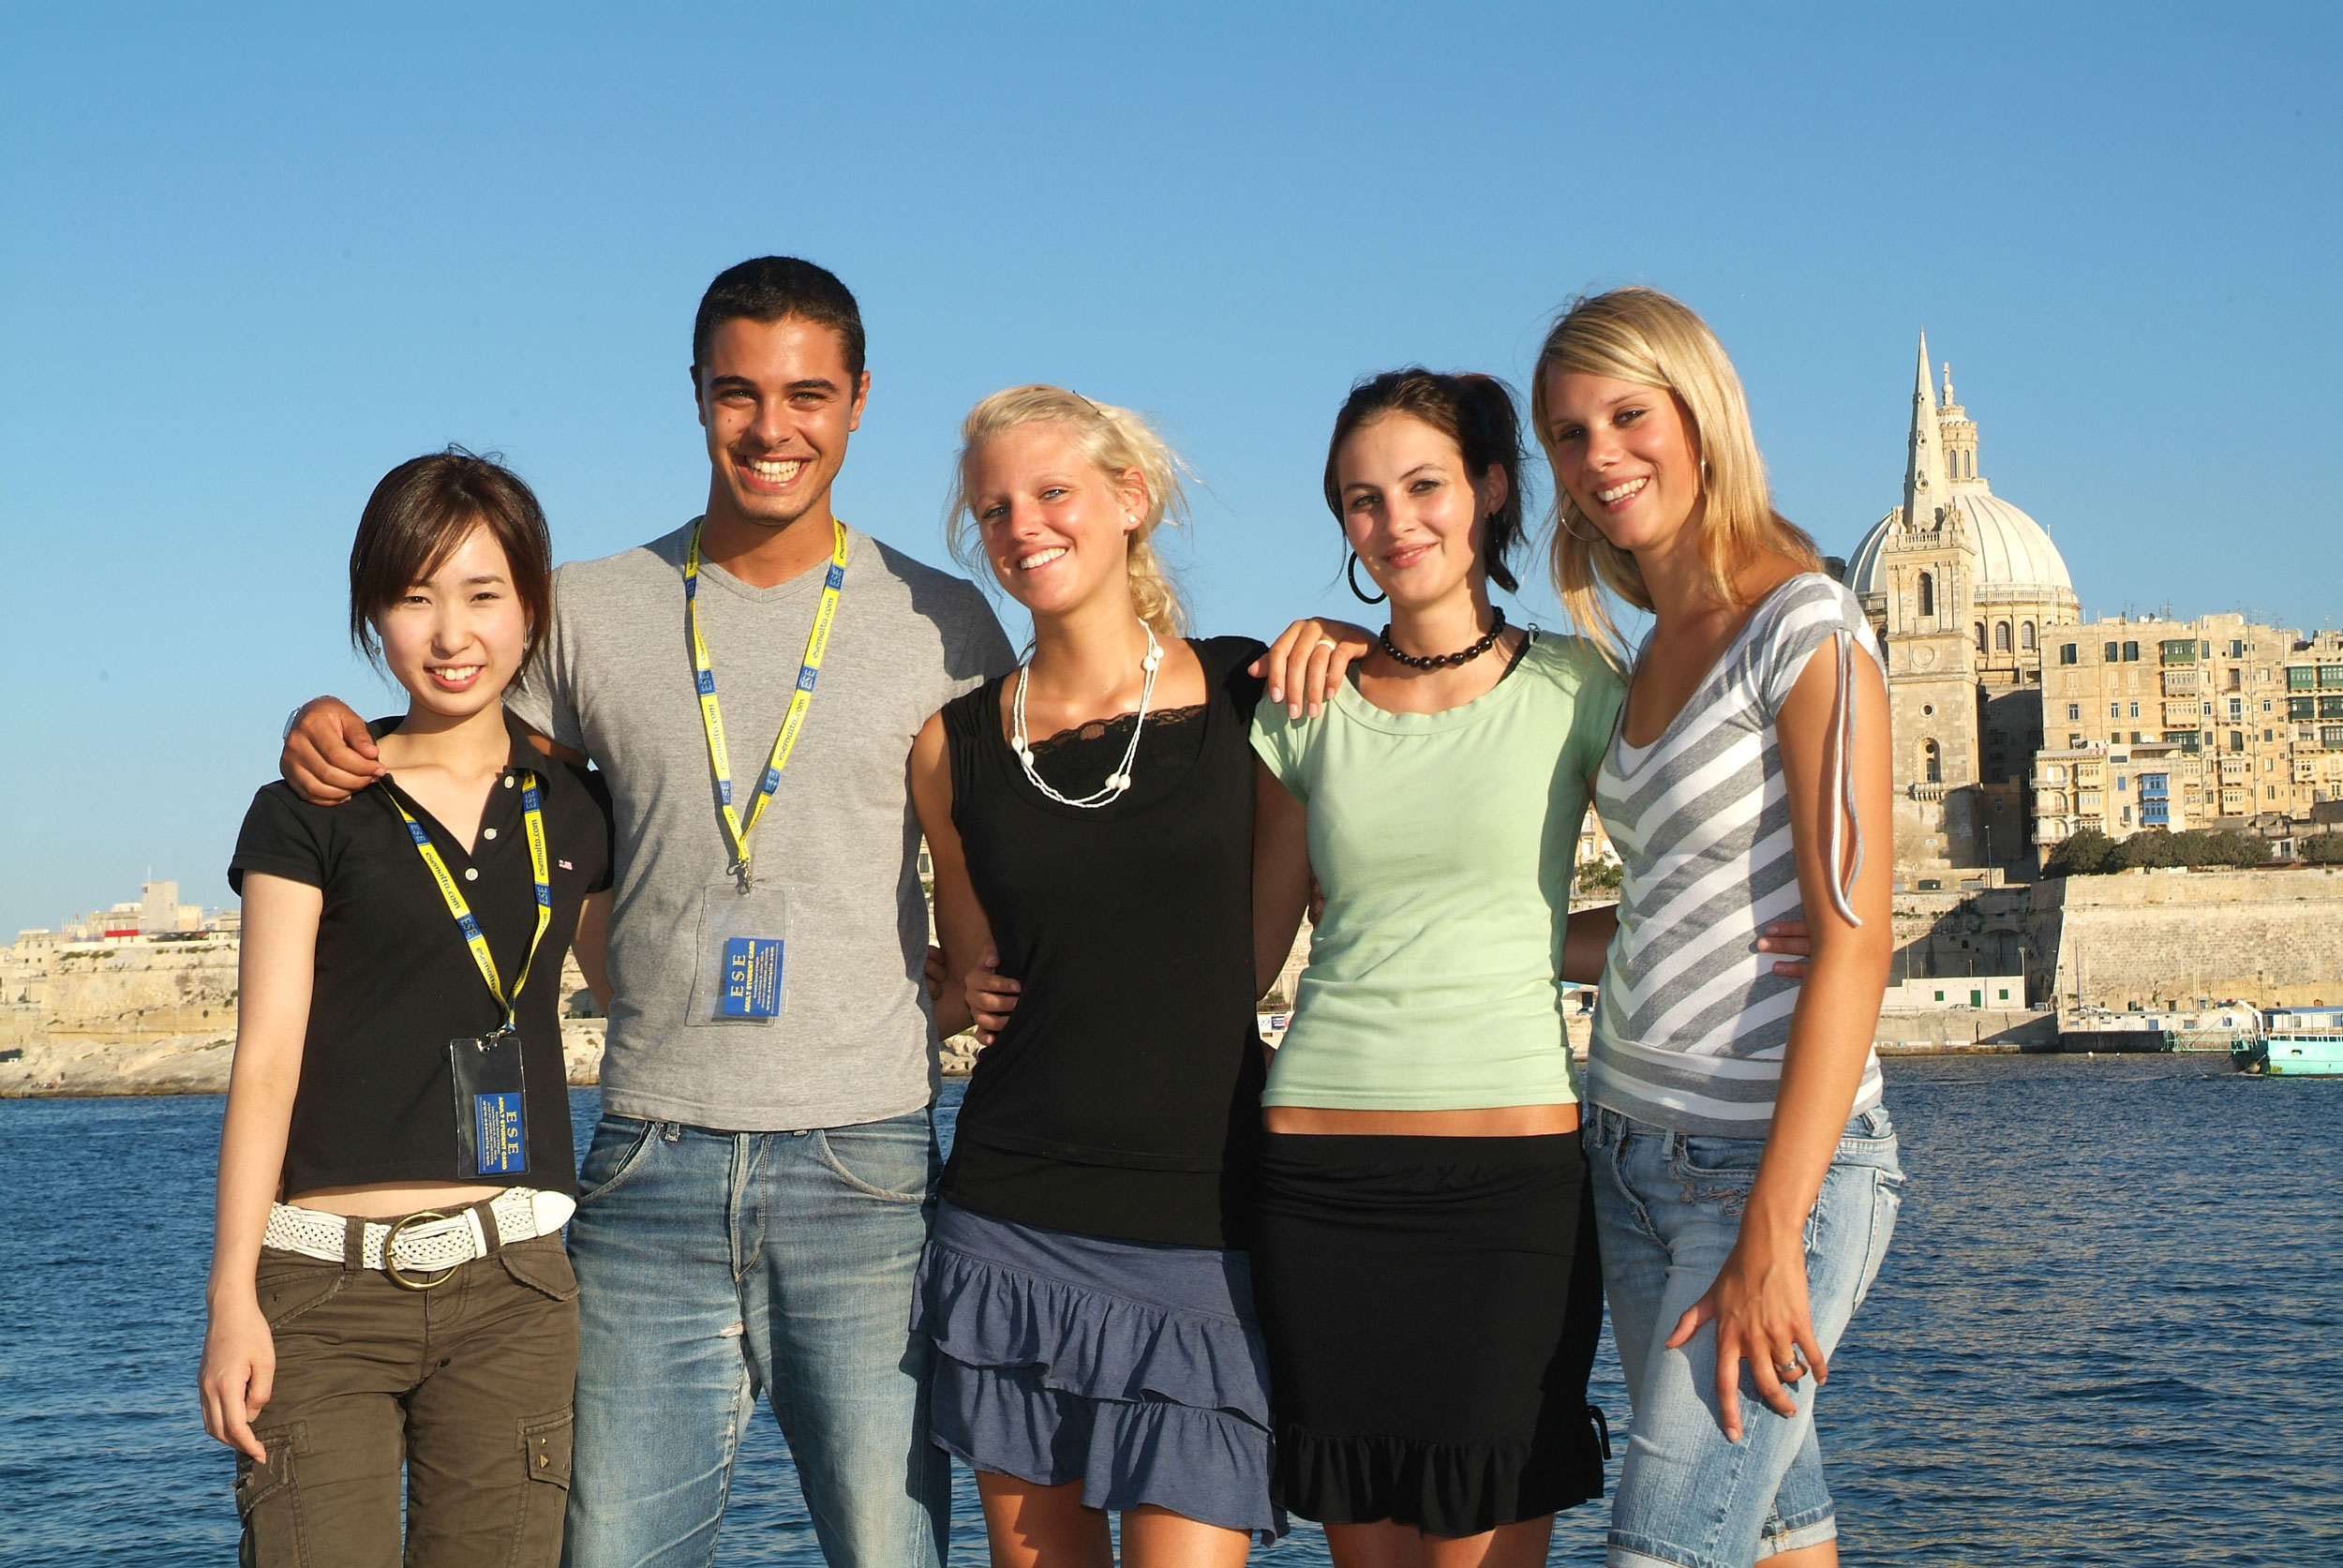 Malta teens group at Manoel island